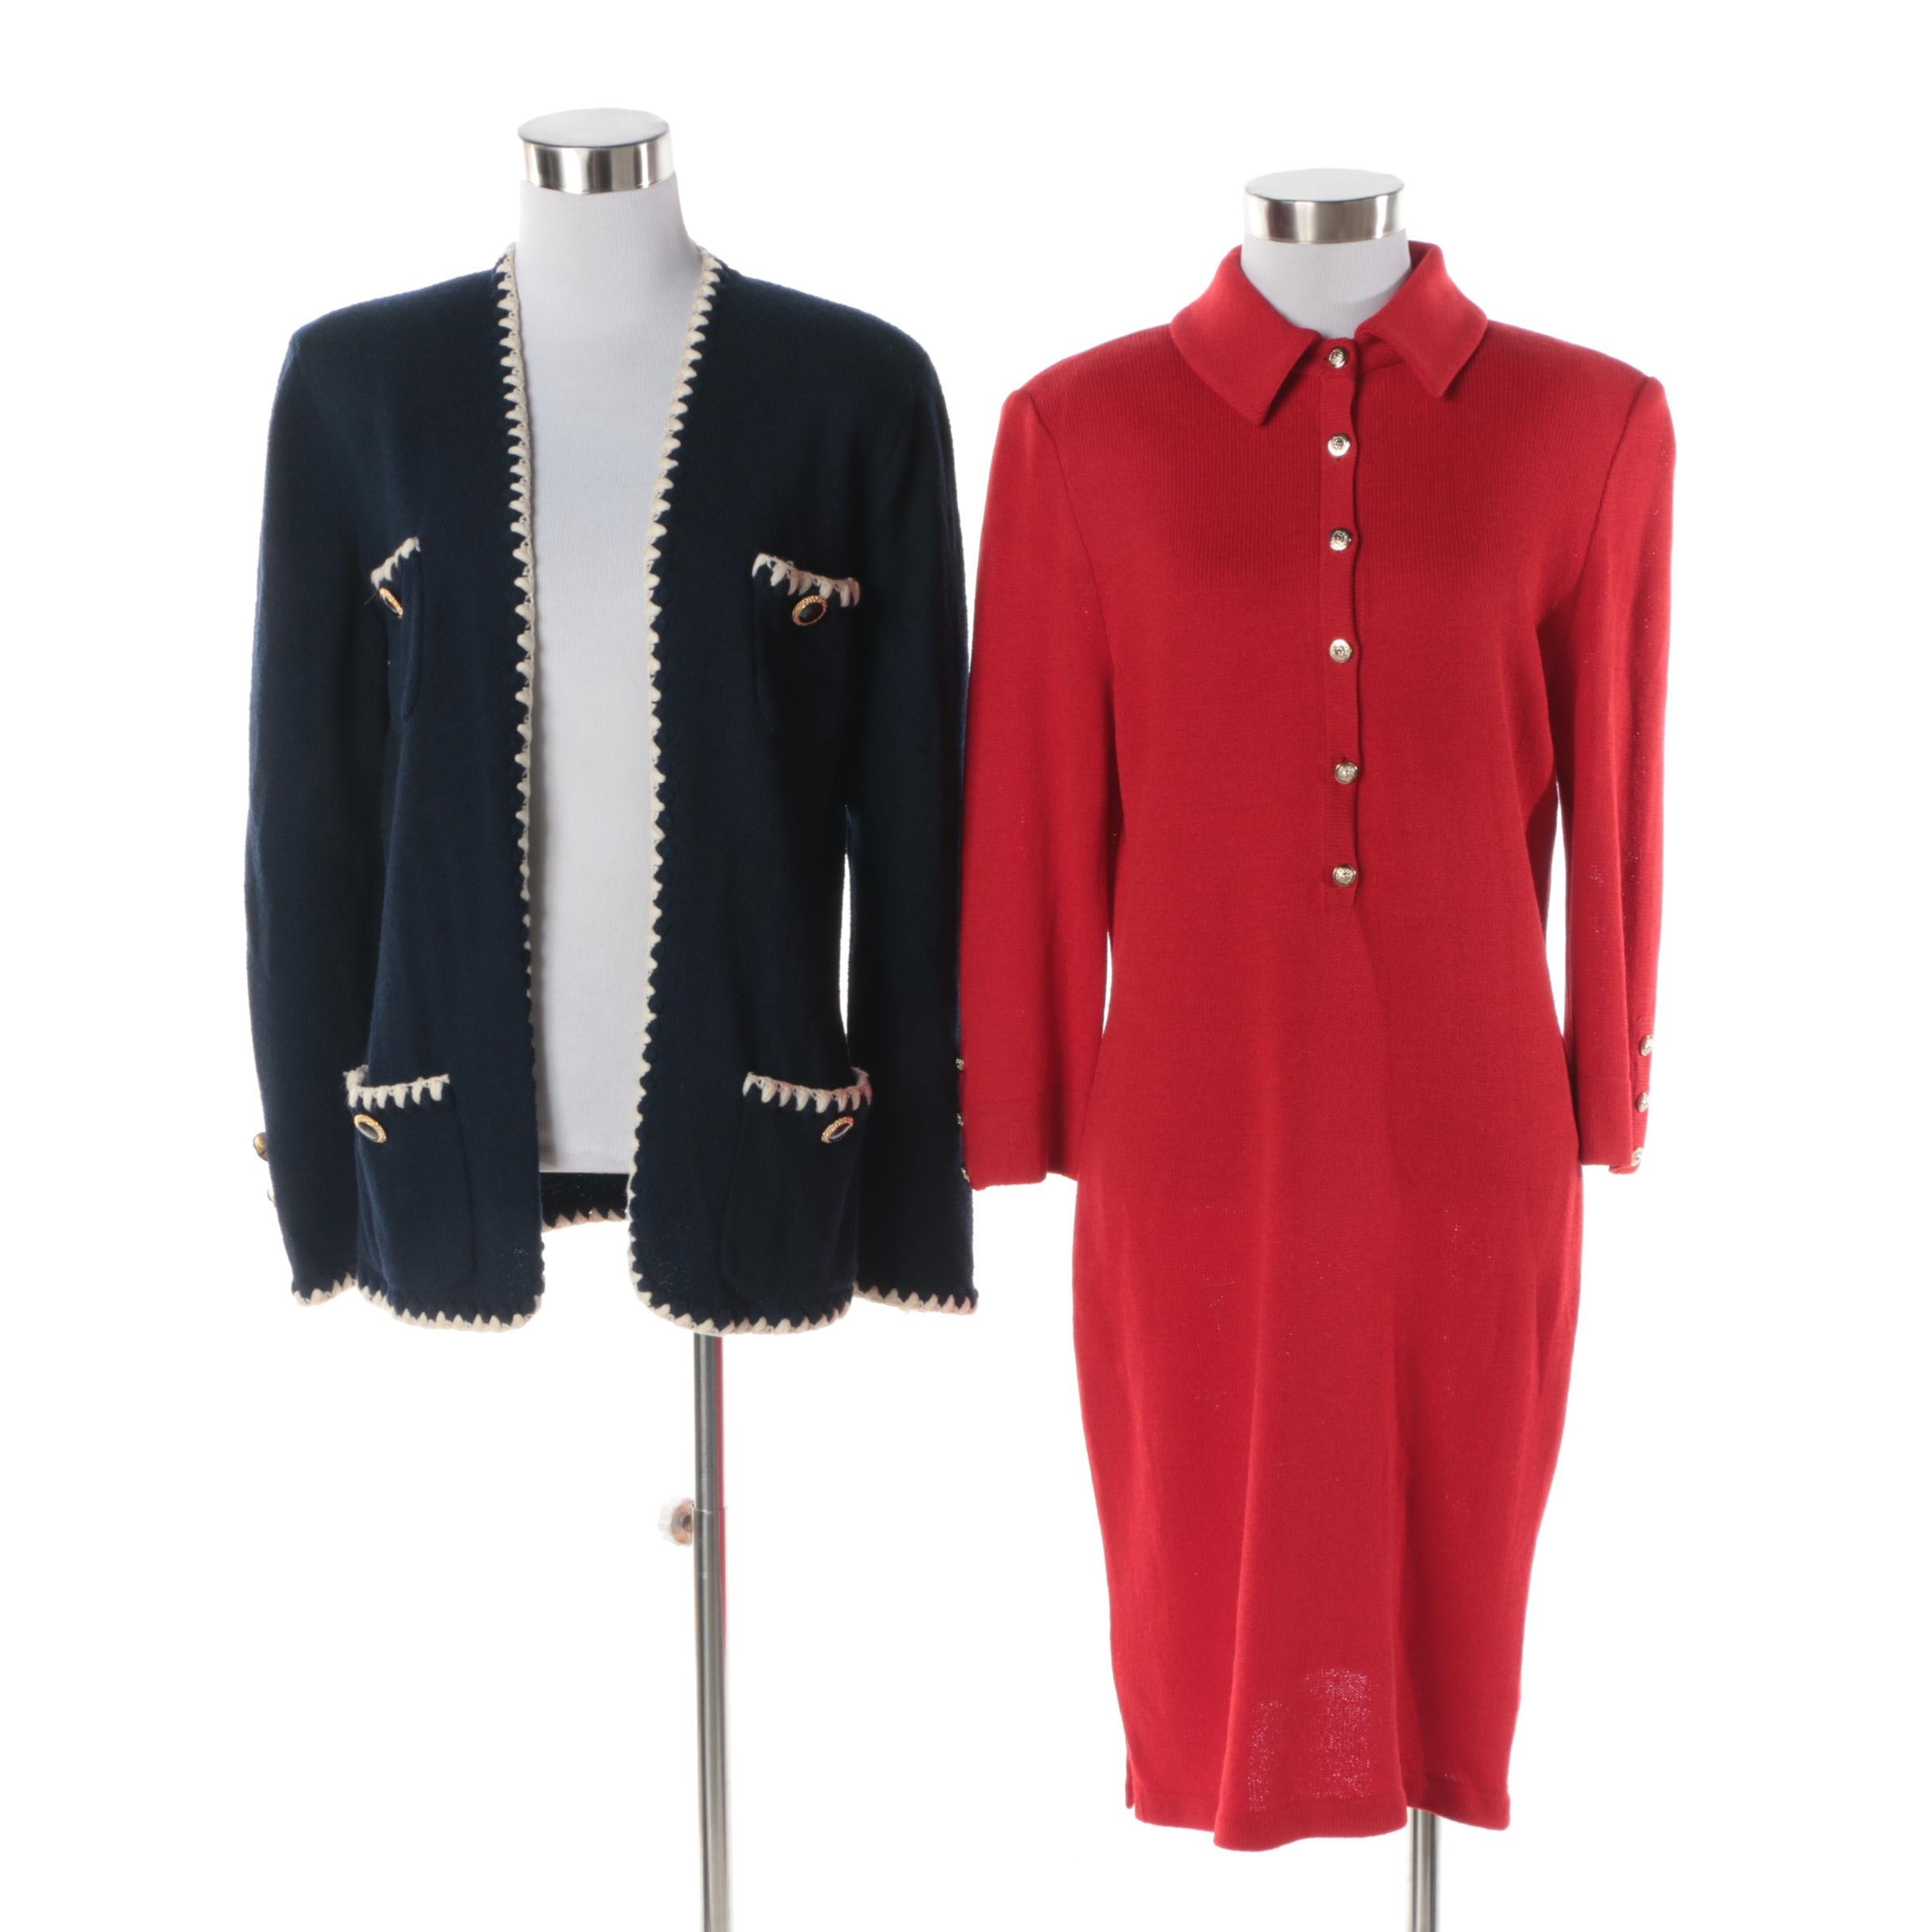 Women's St. John Open-Front Knit Cardigan and St. John Collection Red Knit Dress